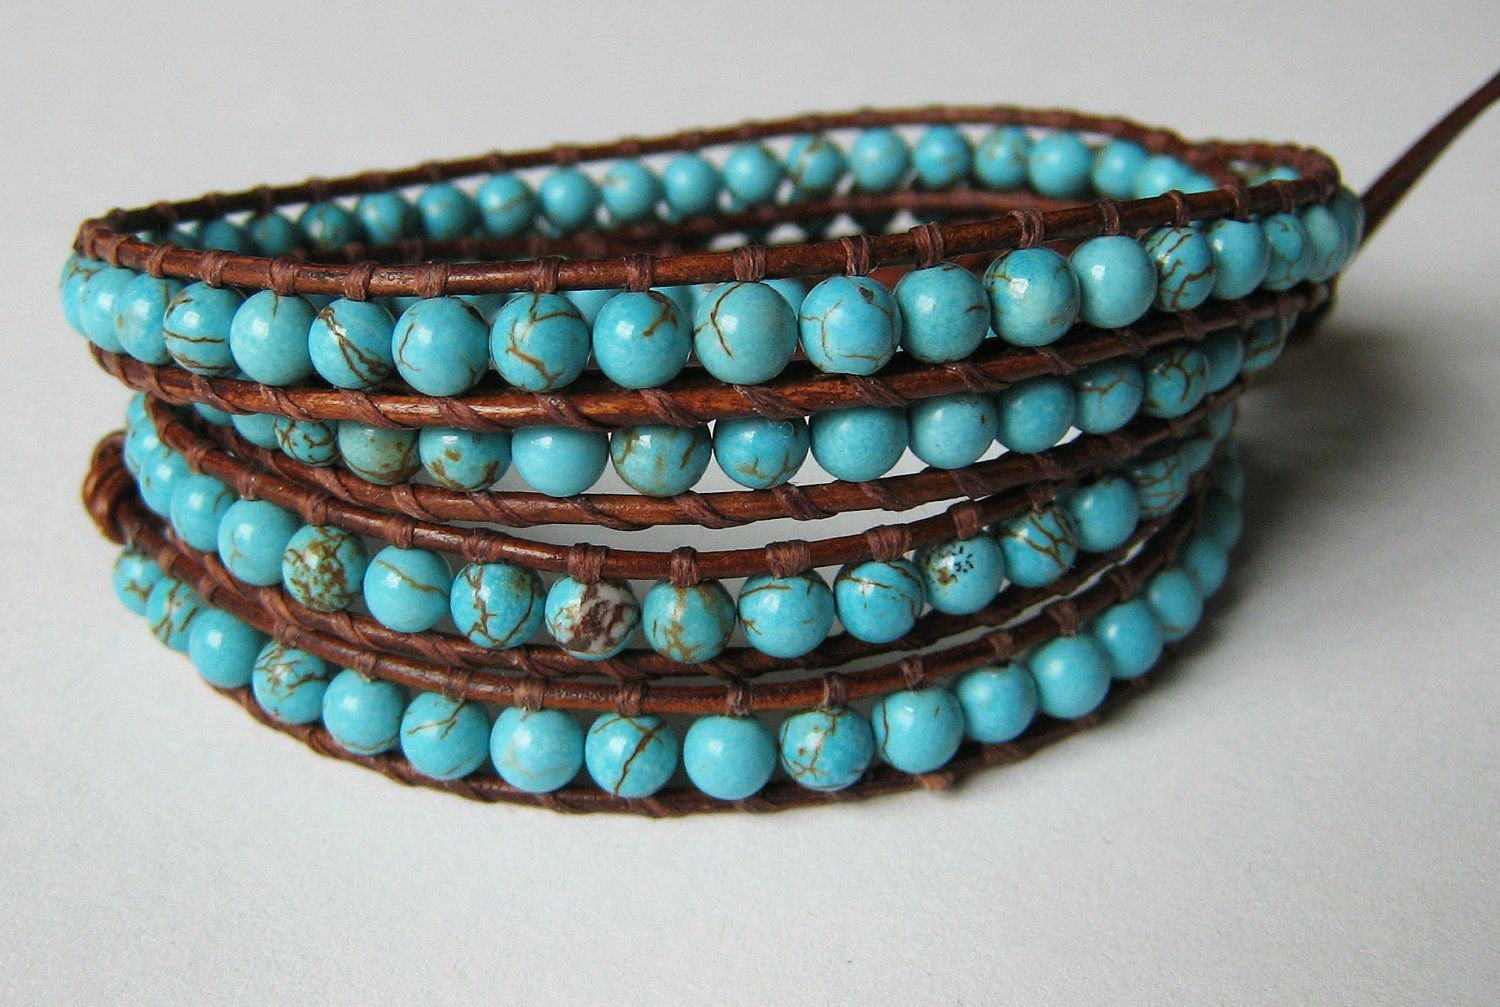 Turquoise and leather wrap bracelet - beautiful :)